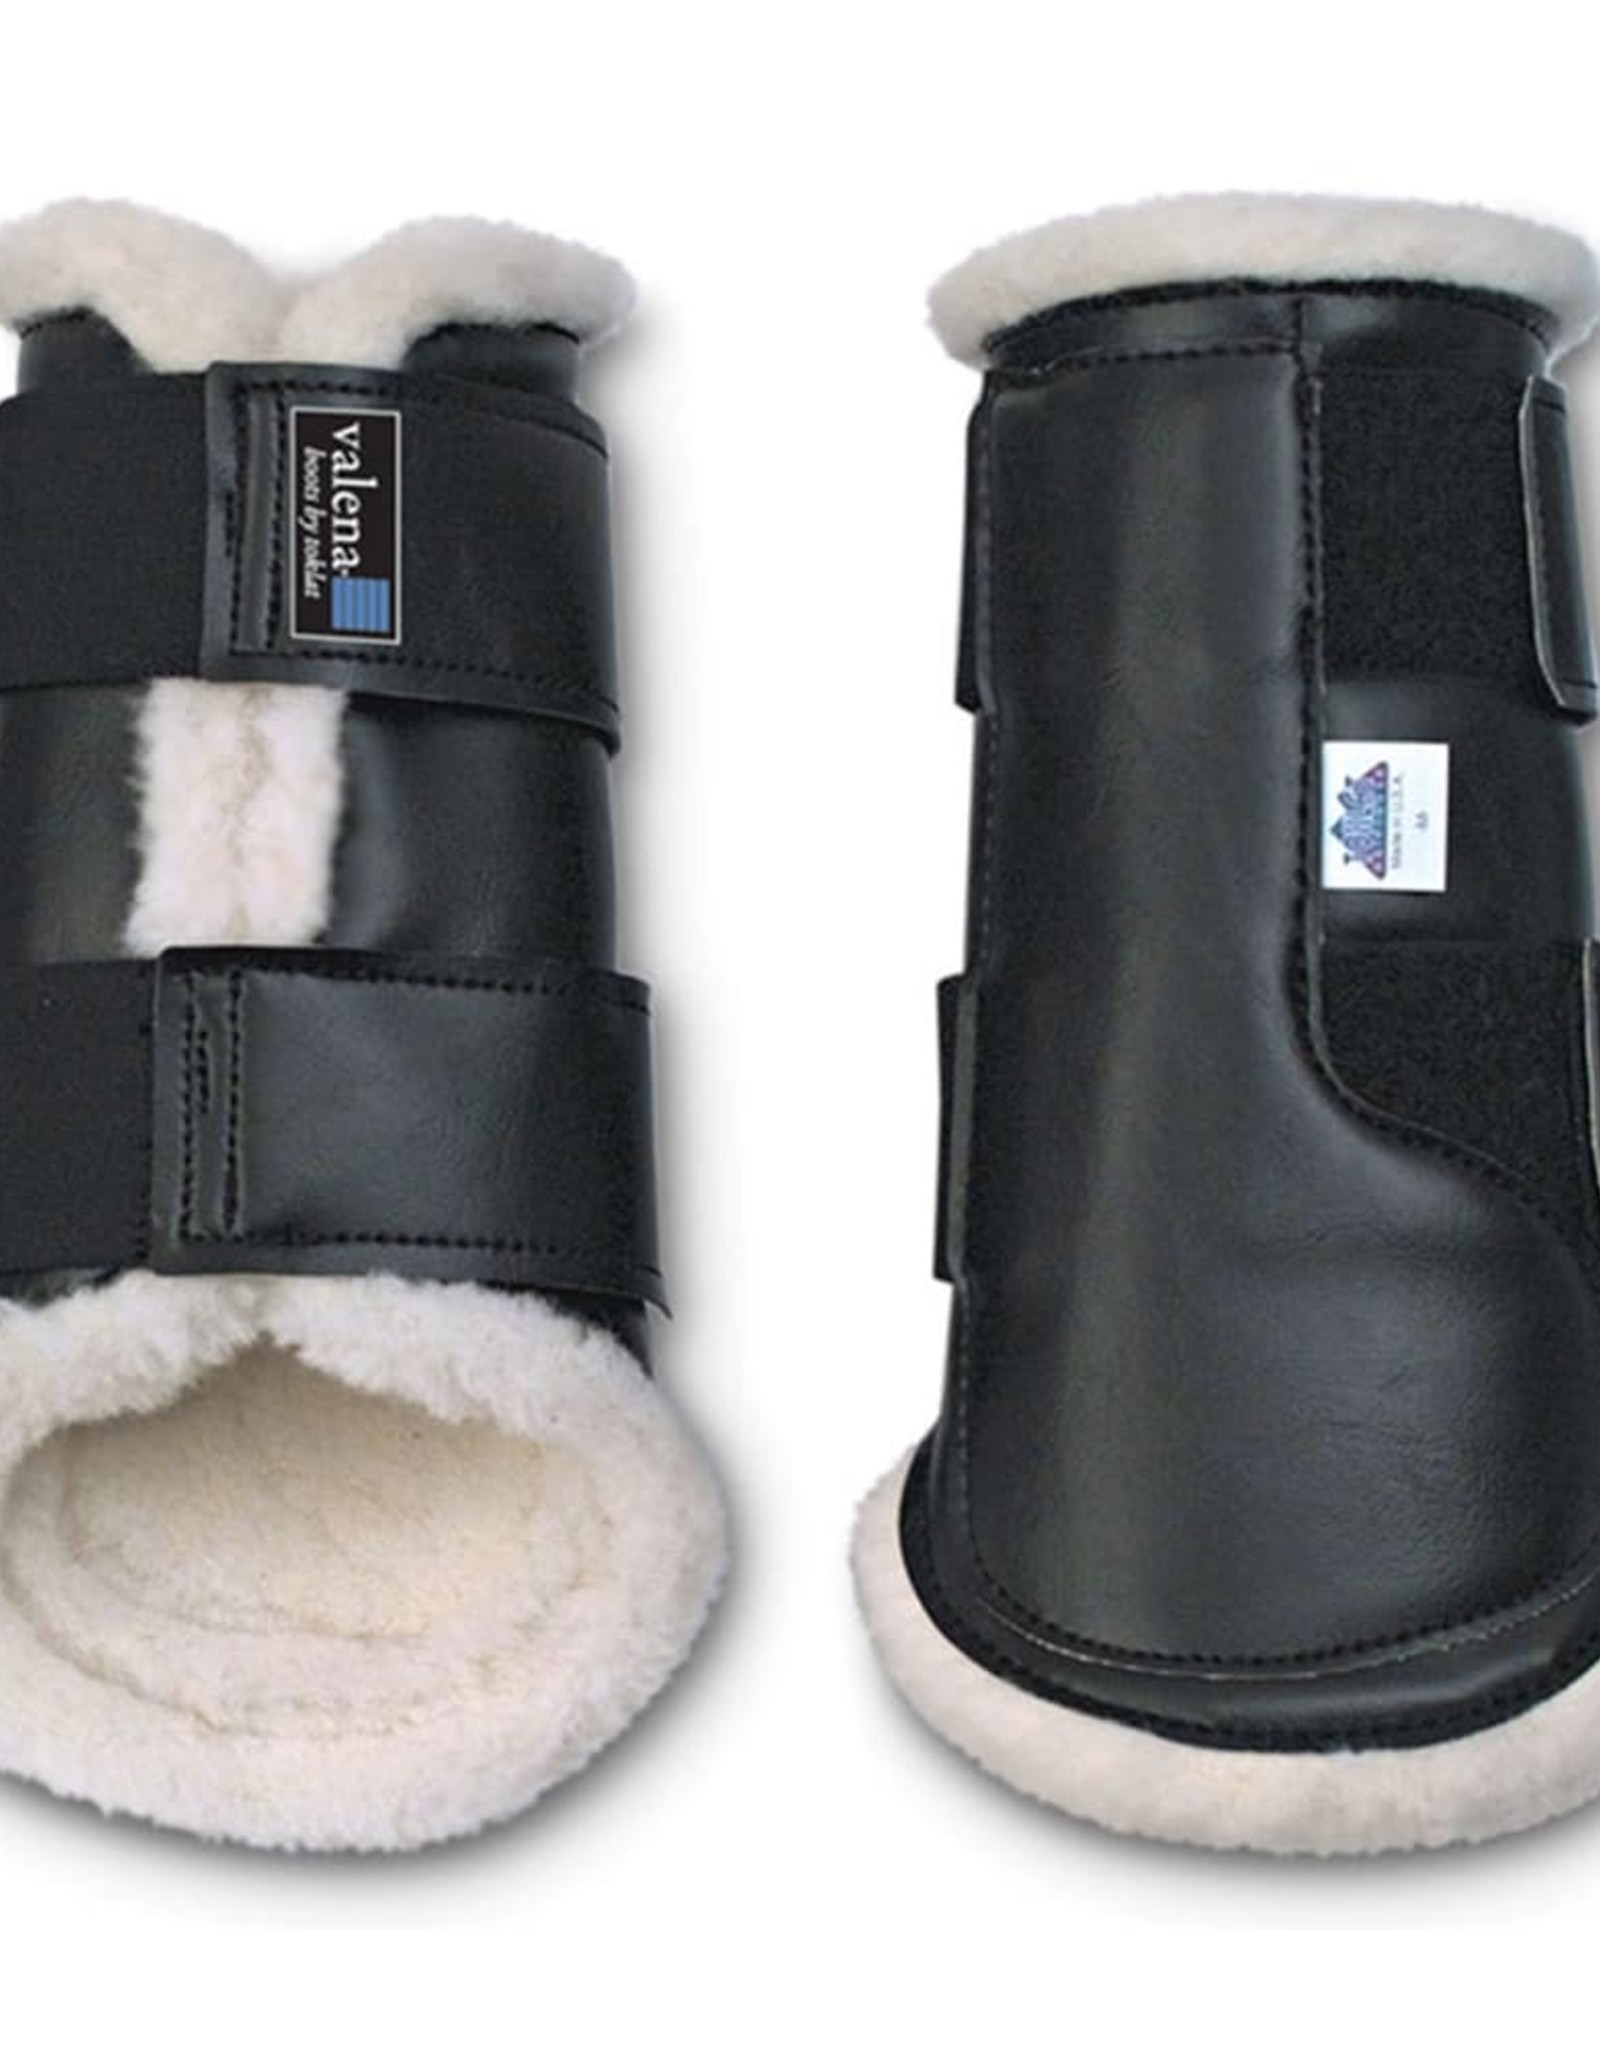 VALENA FRONT BOOTS